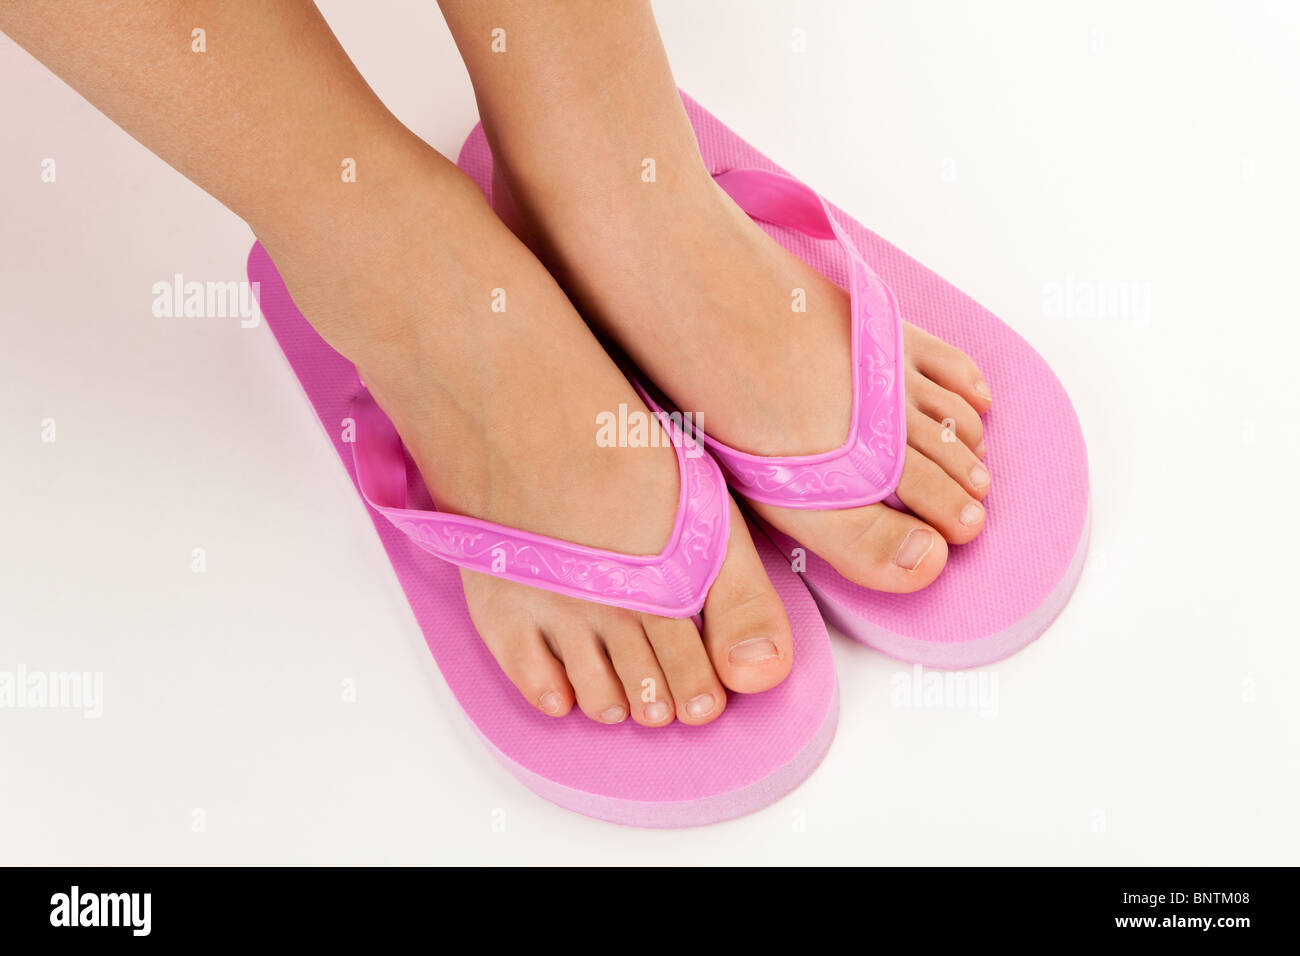 Pink flip flop sandal with white background - Stock Image